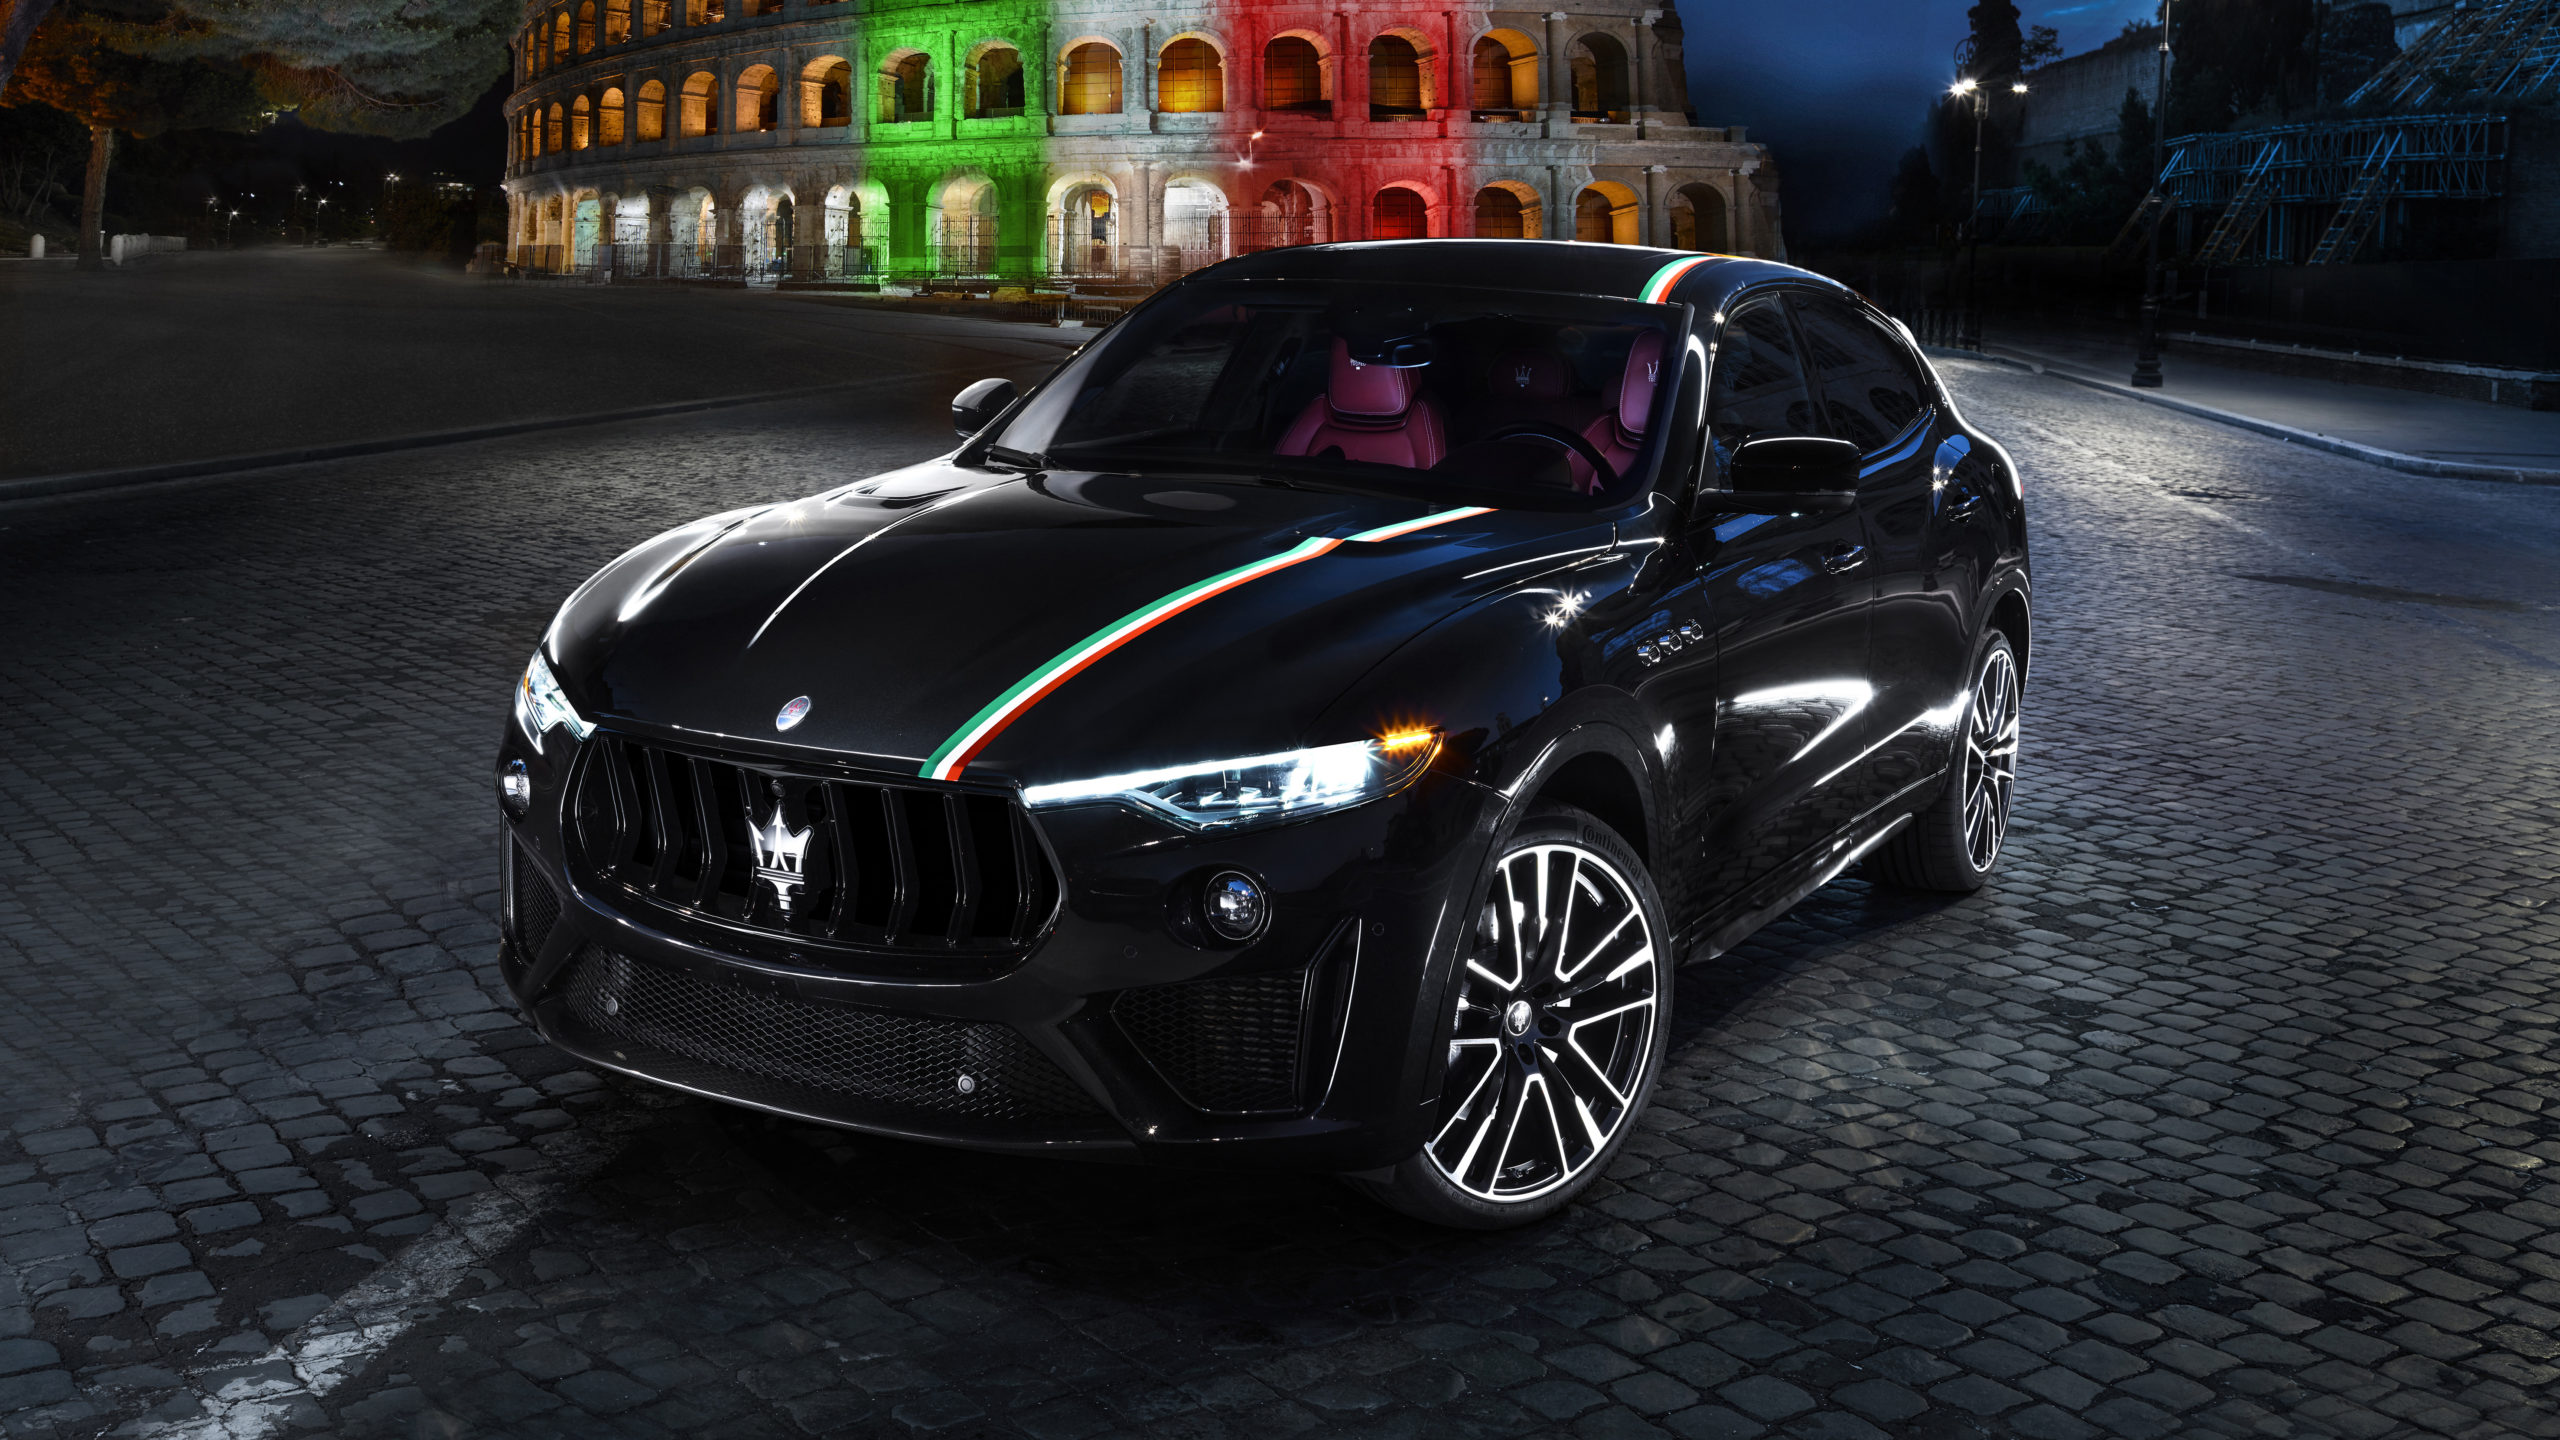 Maserati Levante Trofeo and GTS, special livery for the V8